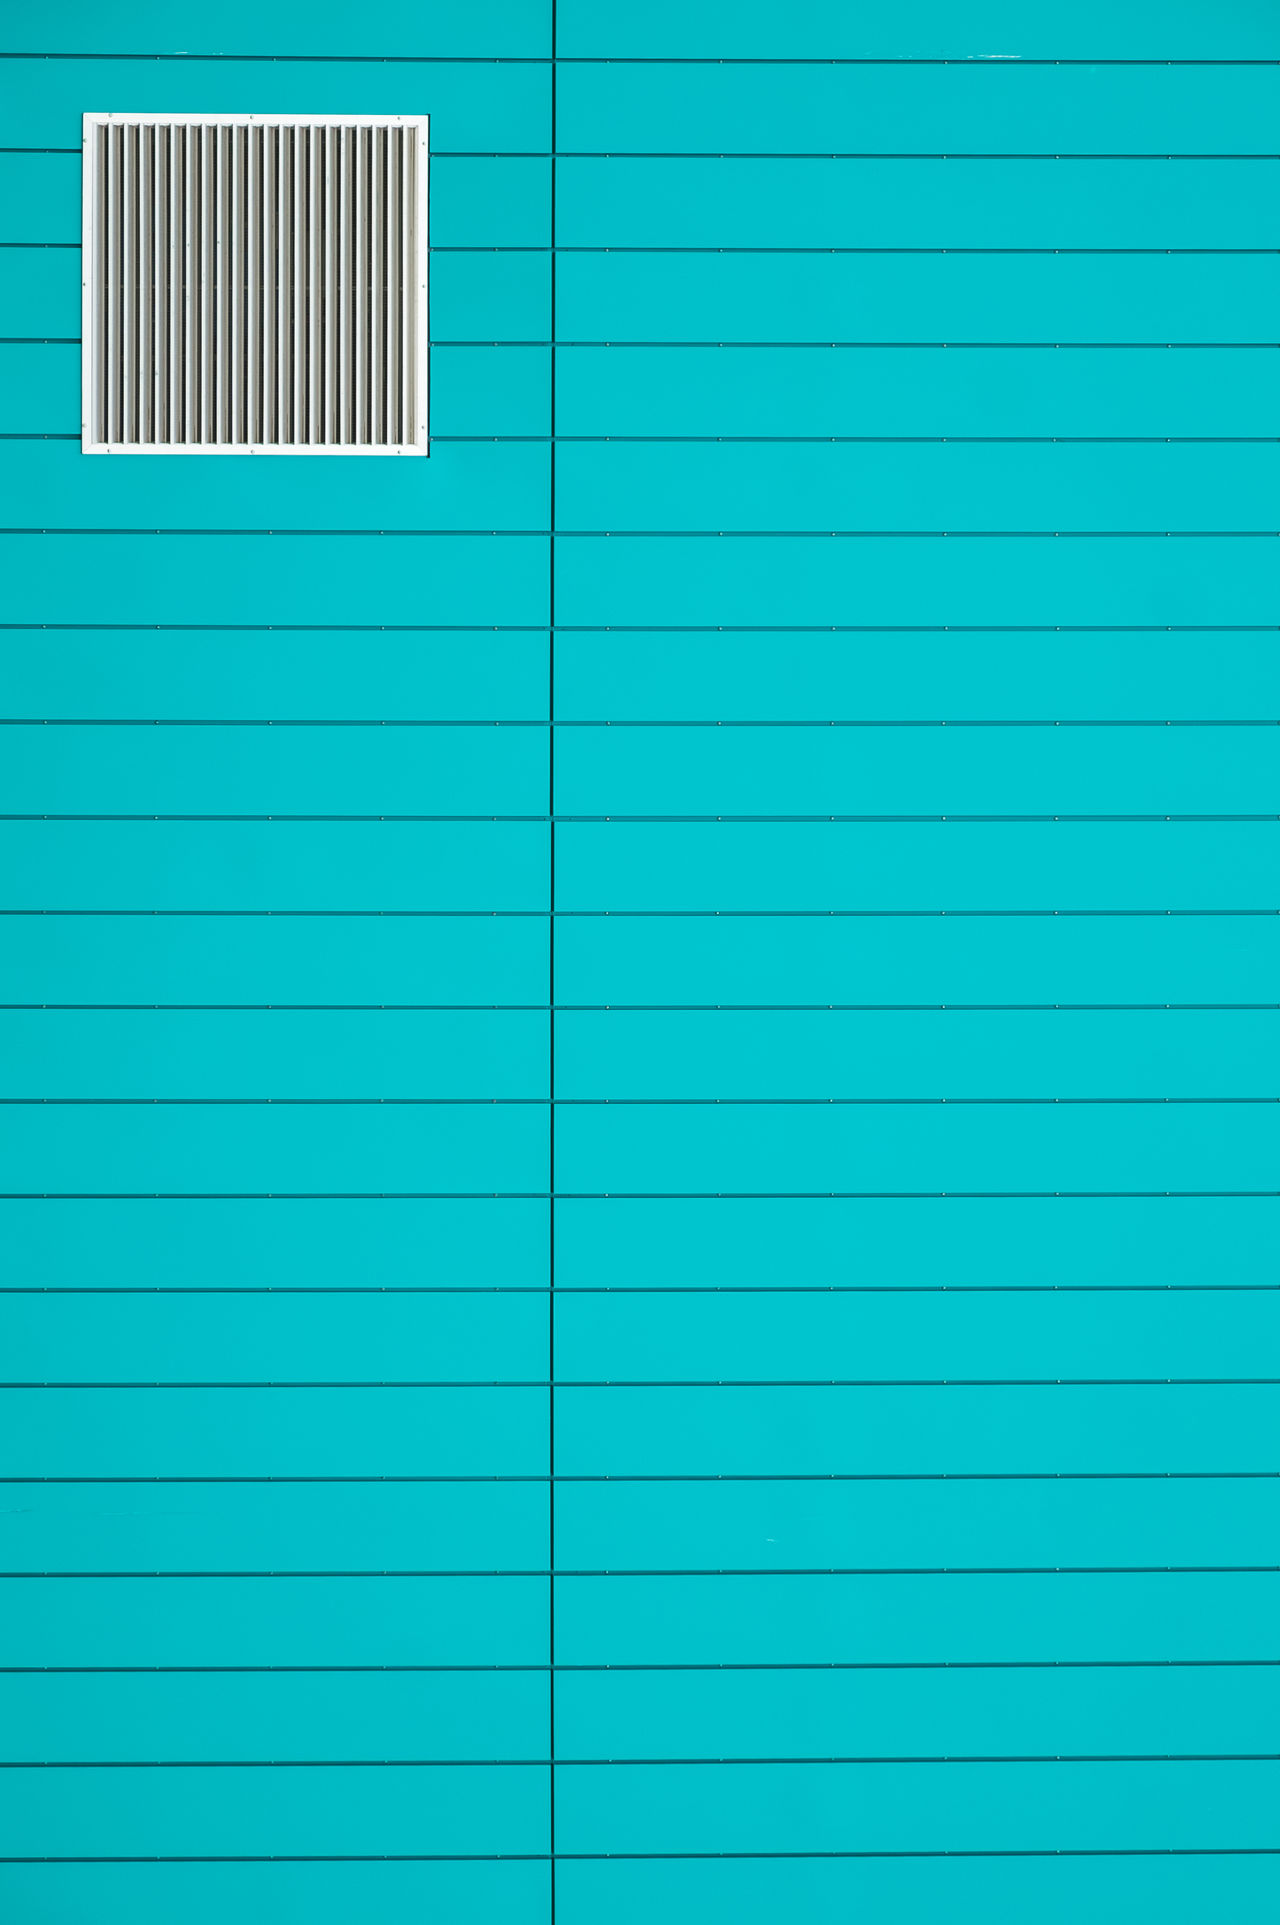 Saturdaysimplicity architectural detail architectural feature blue building exterior built structure cityexplorer close-up full frame minimal minimalism Minimalist minimalistic minimalobsession no people Pattern, texture, shape and form patterns simplicity Surface structure Surfaces and Textures turquoise Turquoise Colored urbanphotography vibrant color Minimalist Architecture